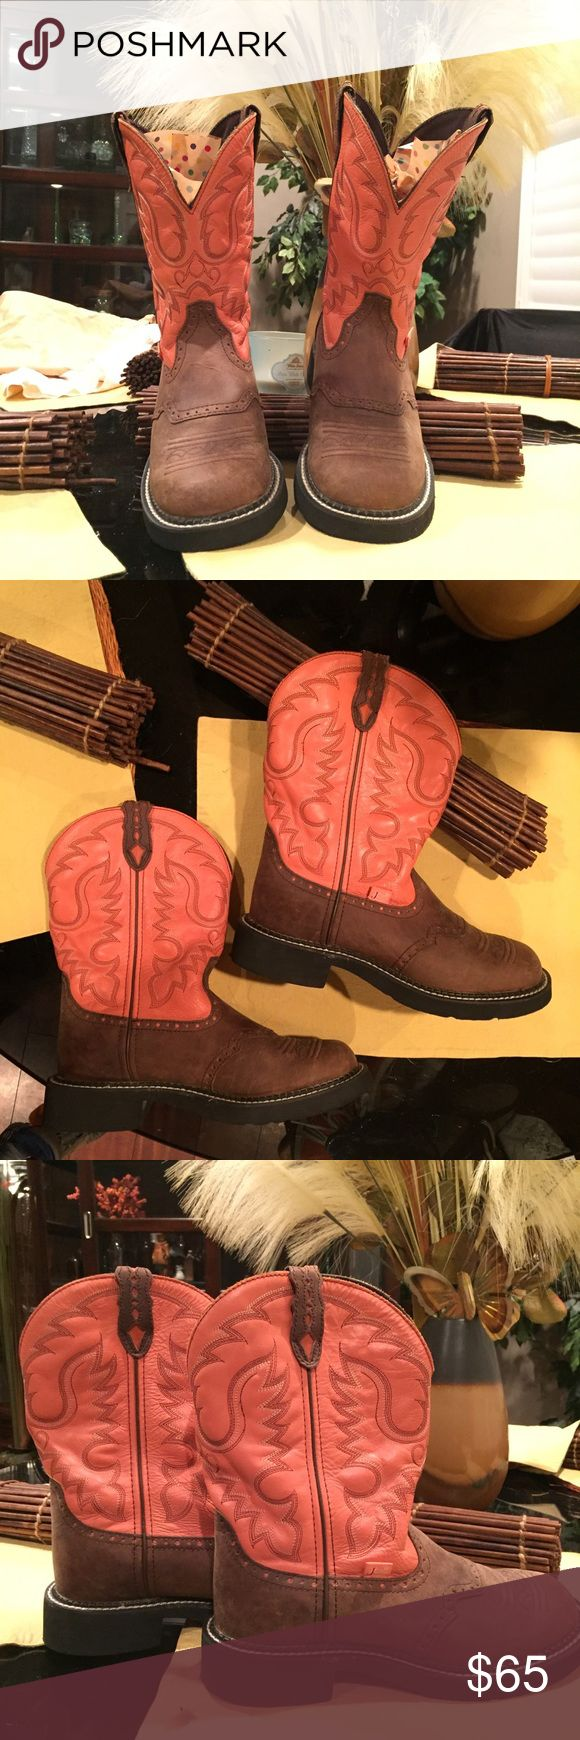 Justin cowboy boots Great pair of Justin boots, like new! Coral and brown color. Justin Boots Shoes